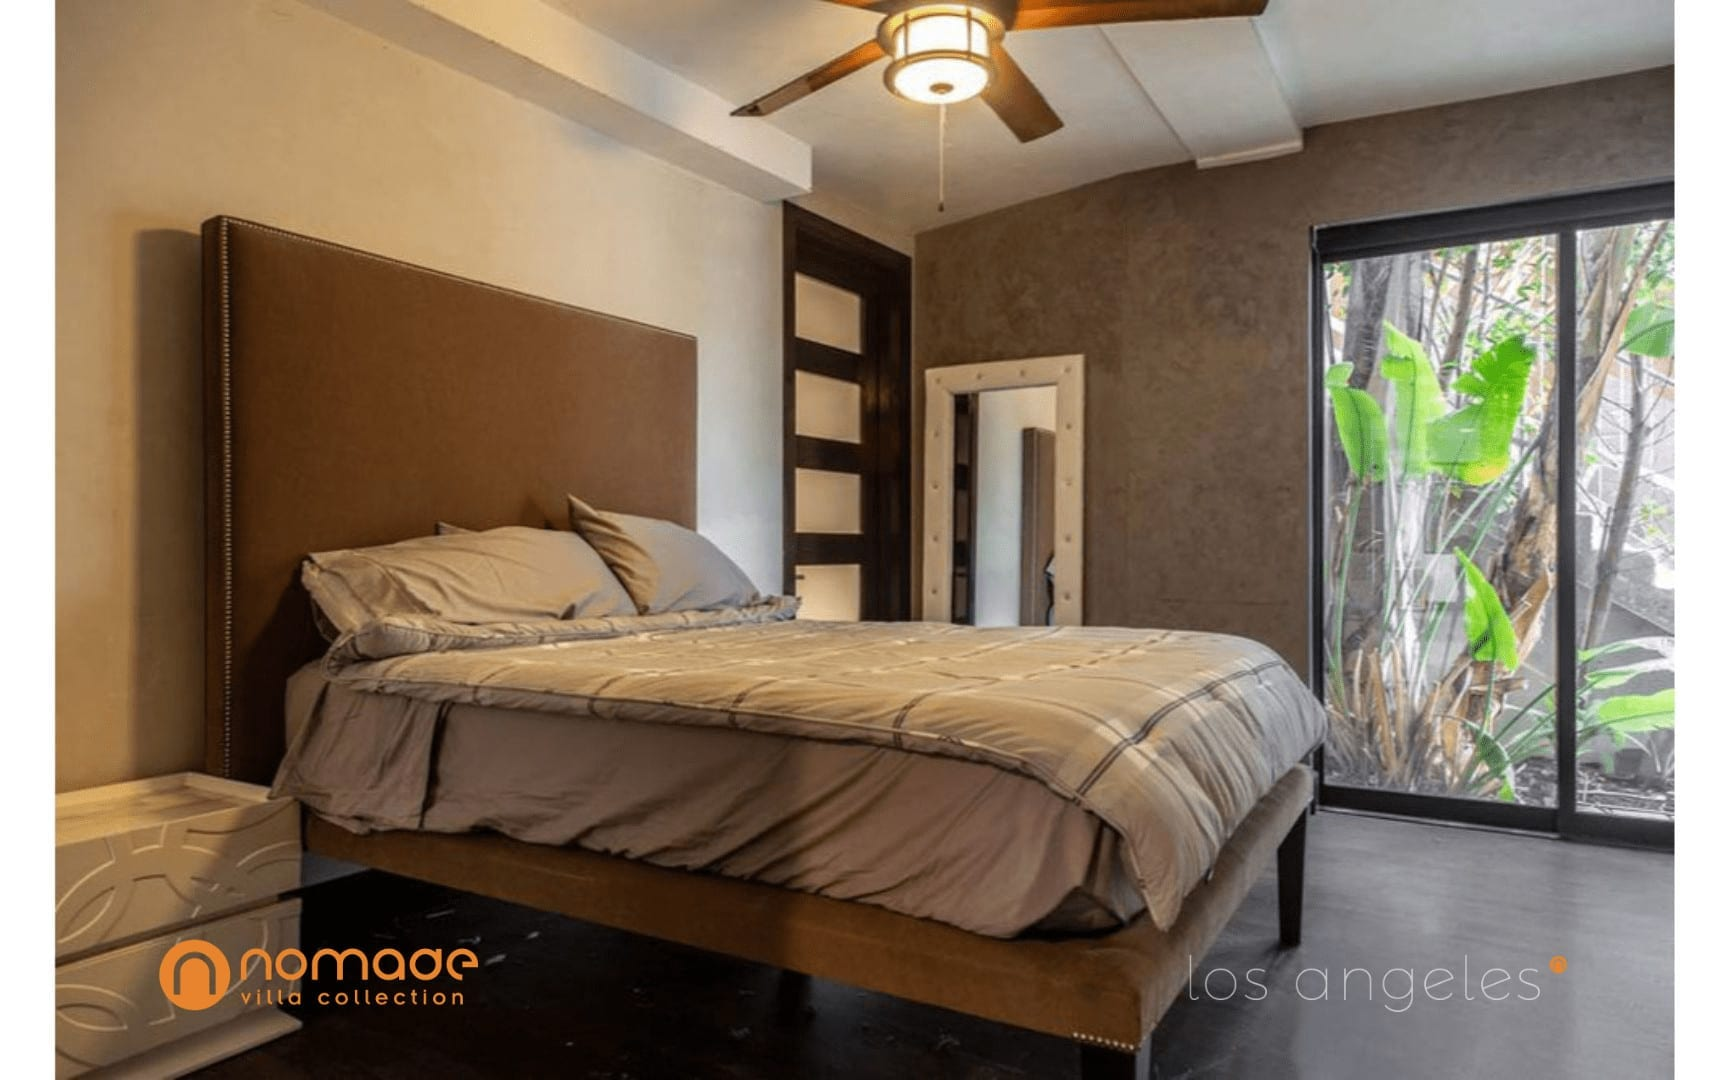 70-Legacy-oasis-guest-bed-2